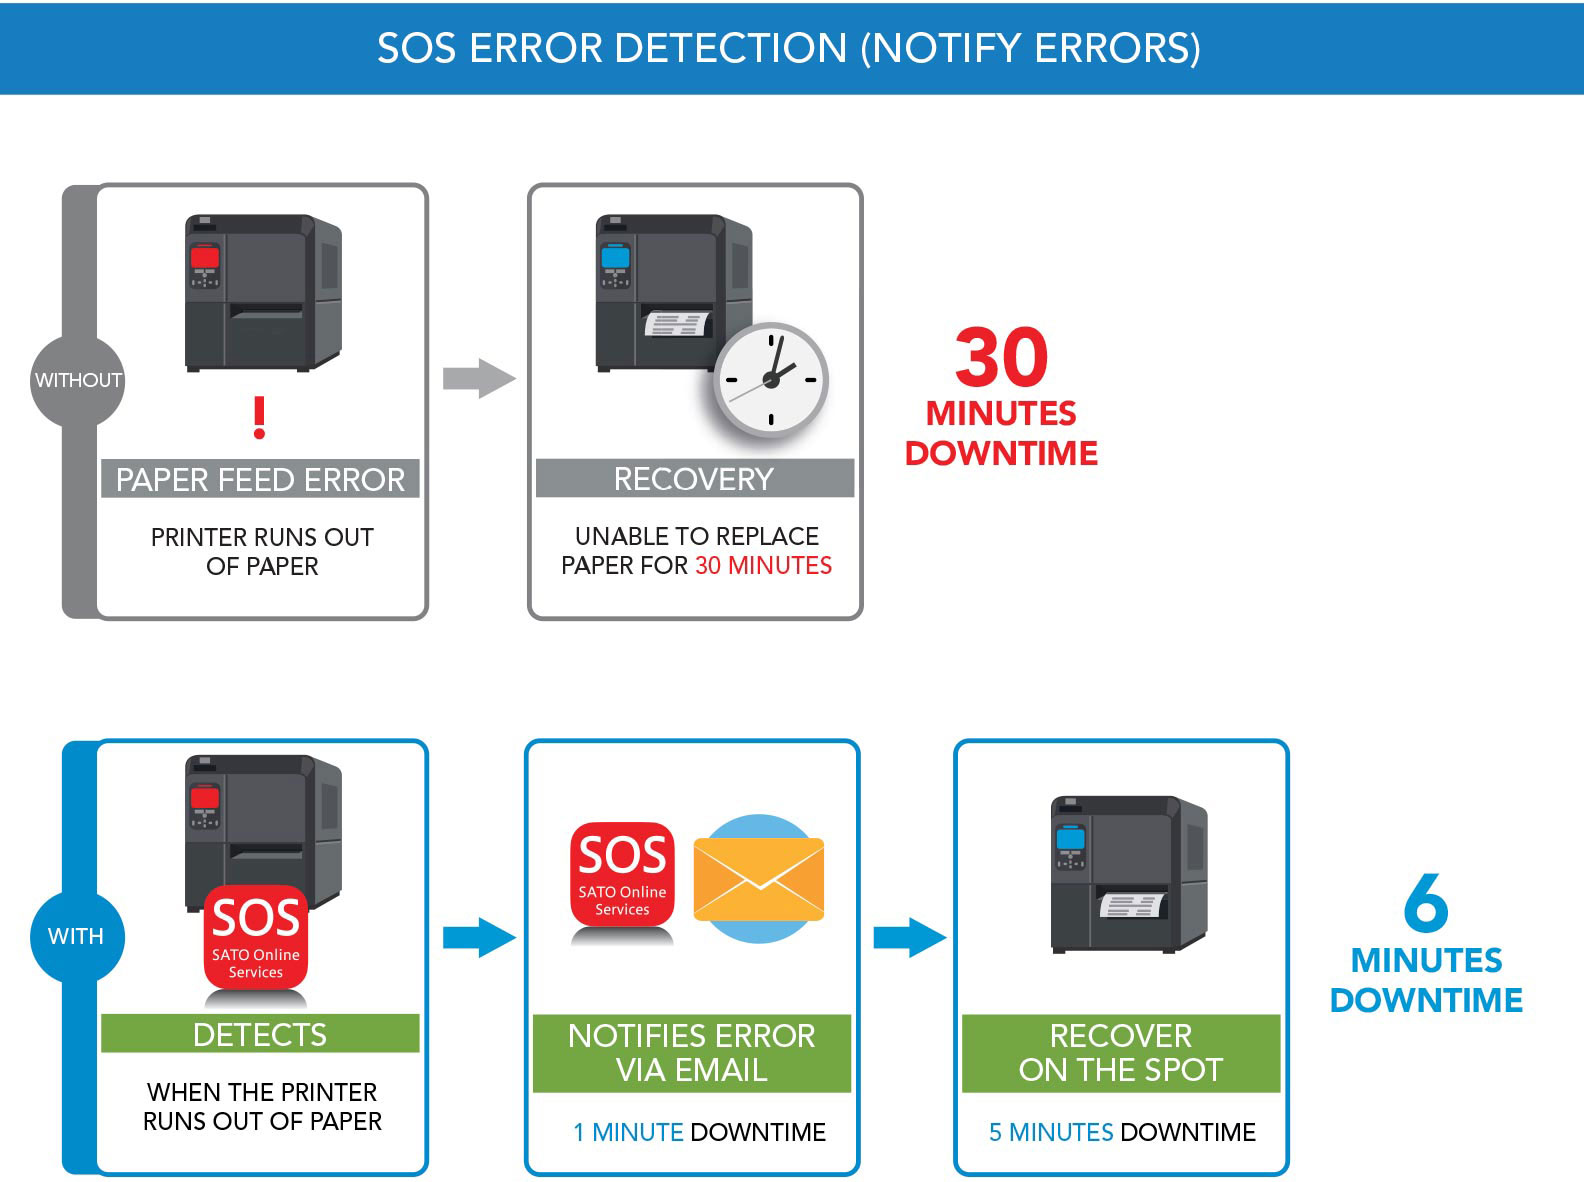 SOS Error Detection illustration